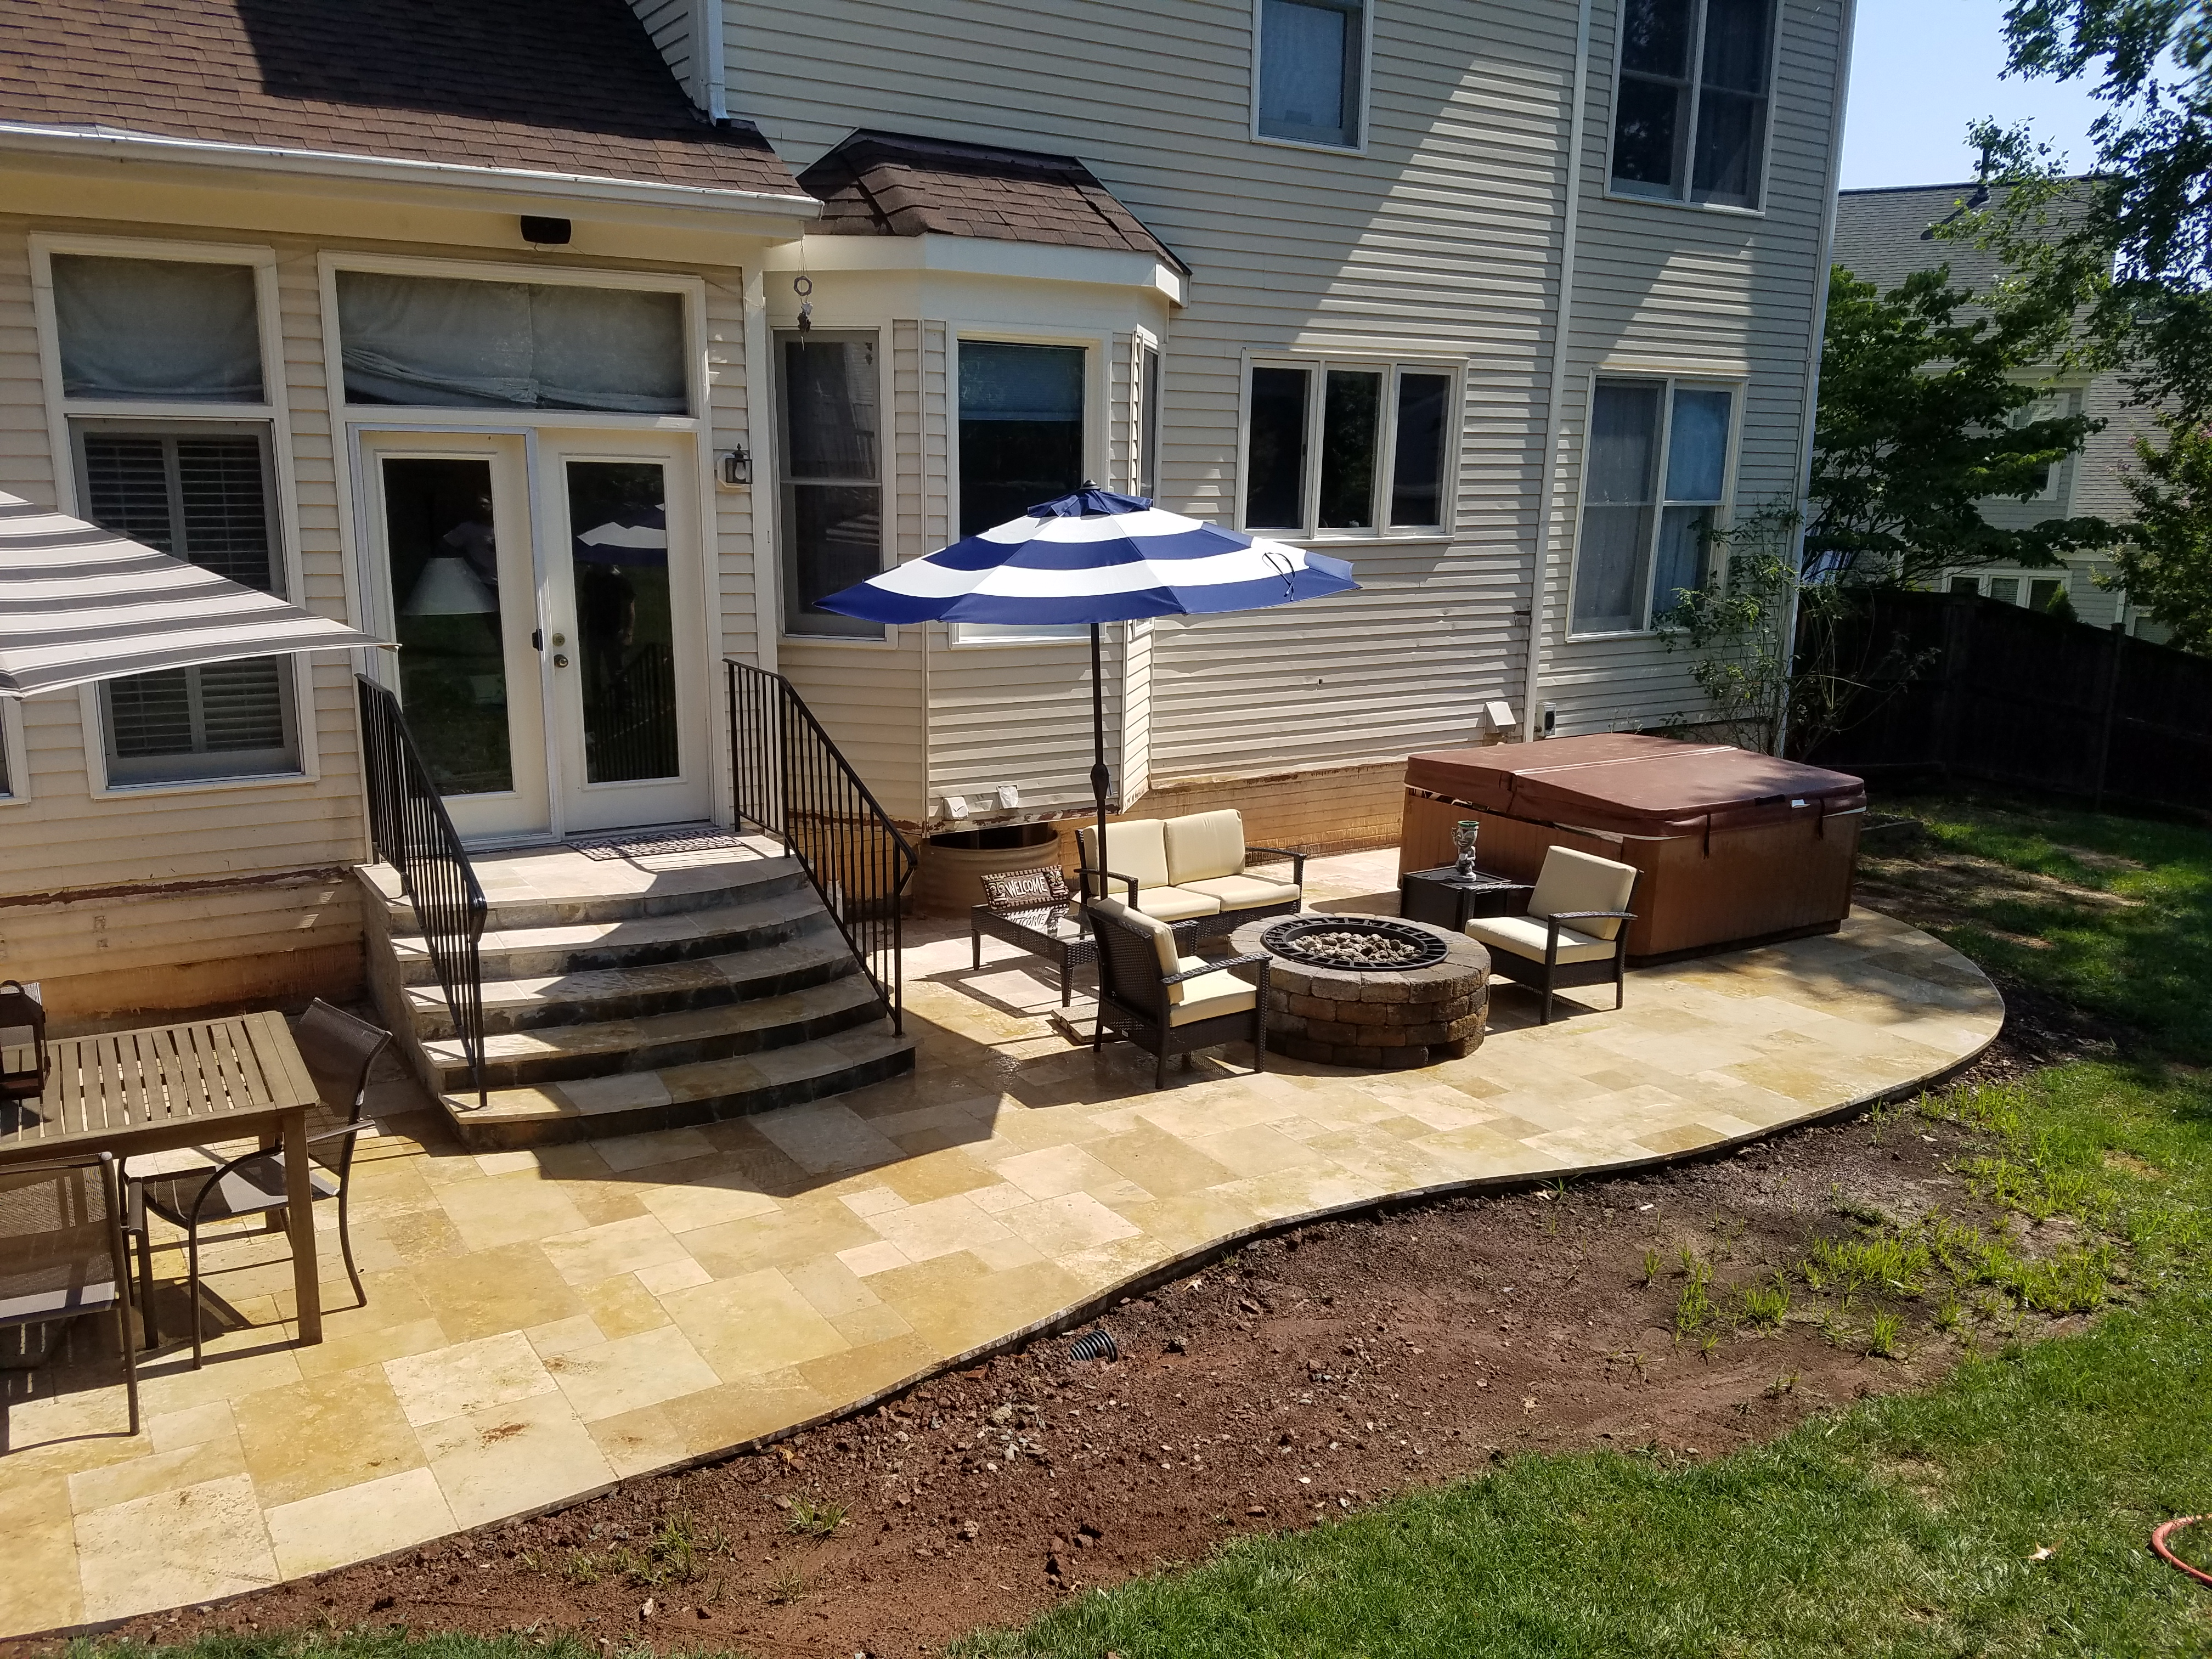 investment every concrete patio c the from patios no landscape space different of pictures your home paths and to an kitchen vs outdoor is landscaping a stamped pavers part r surrounding basement